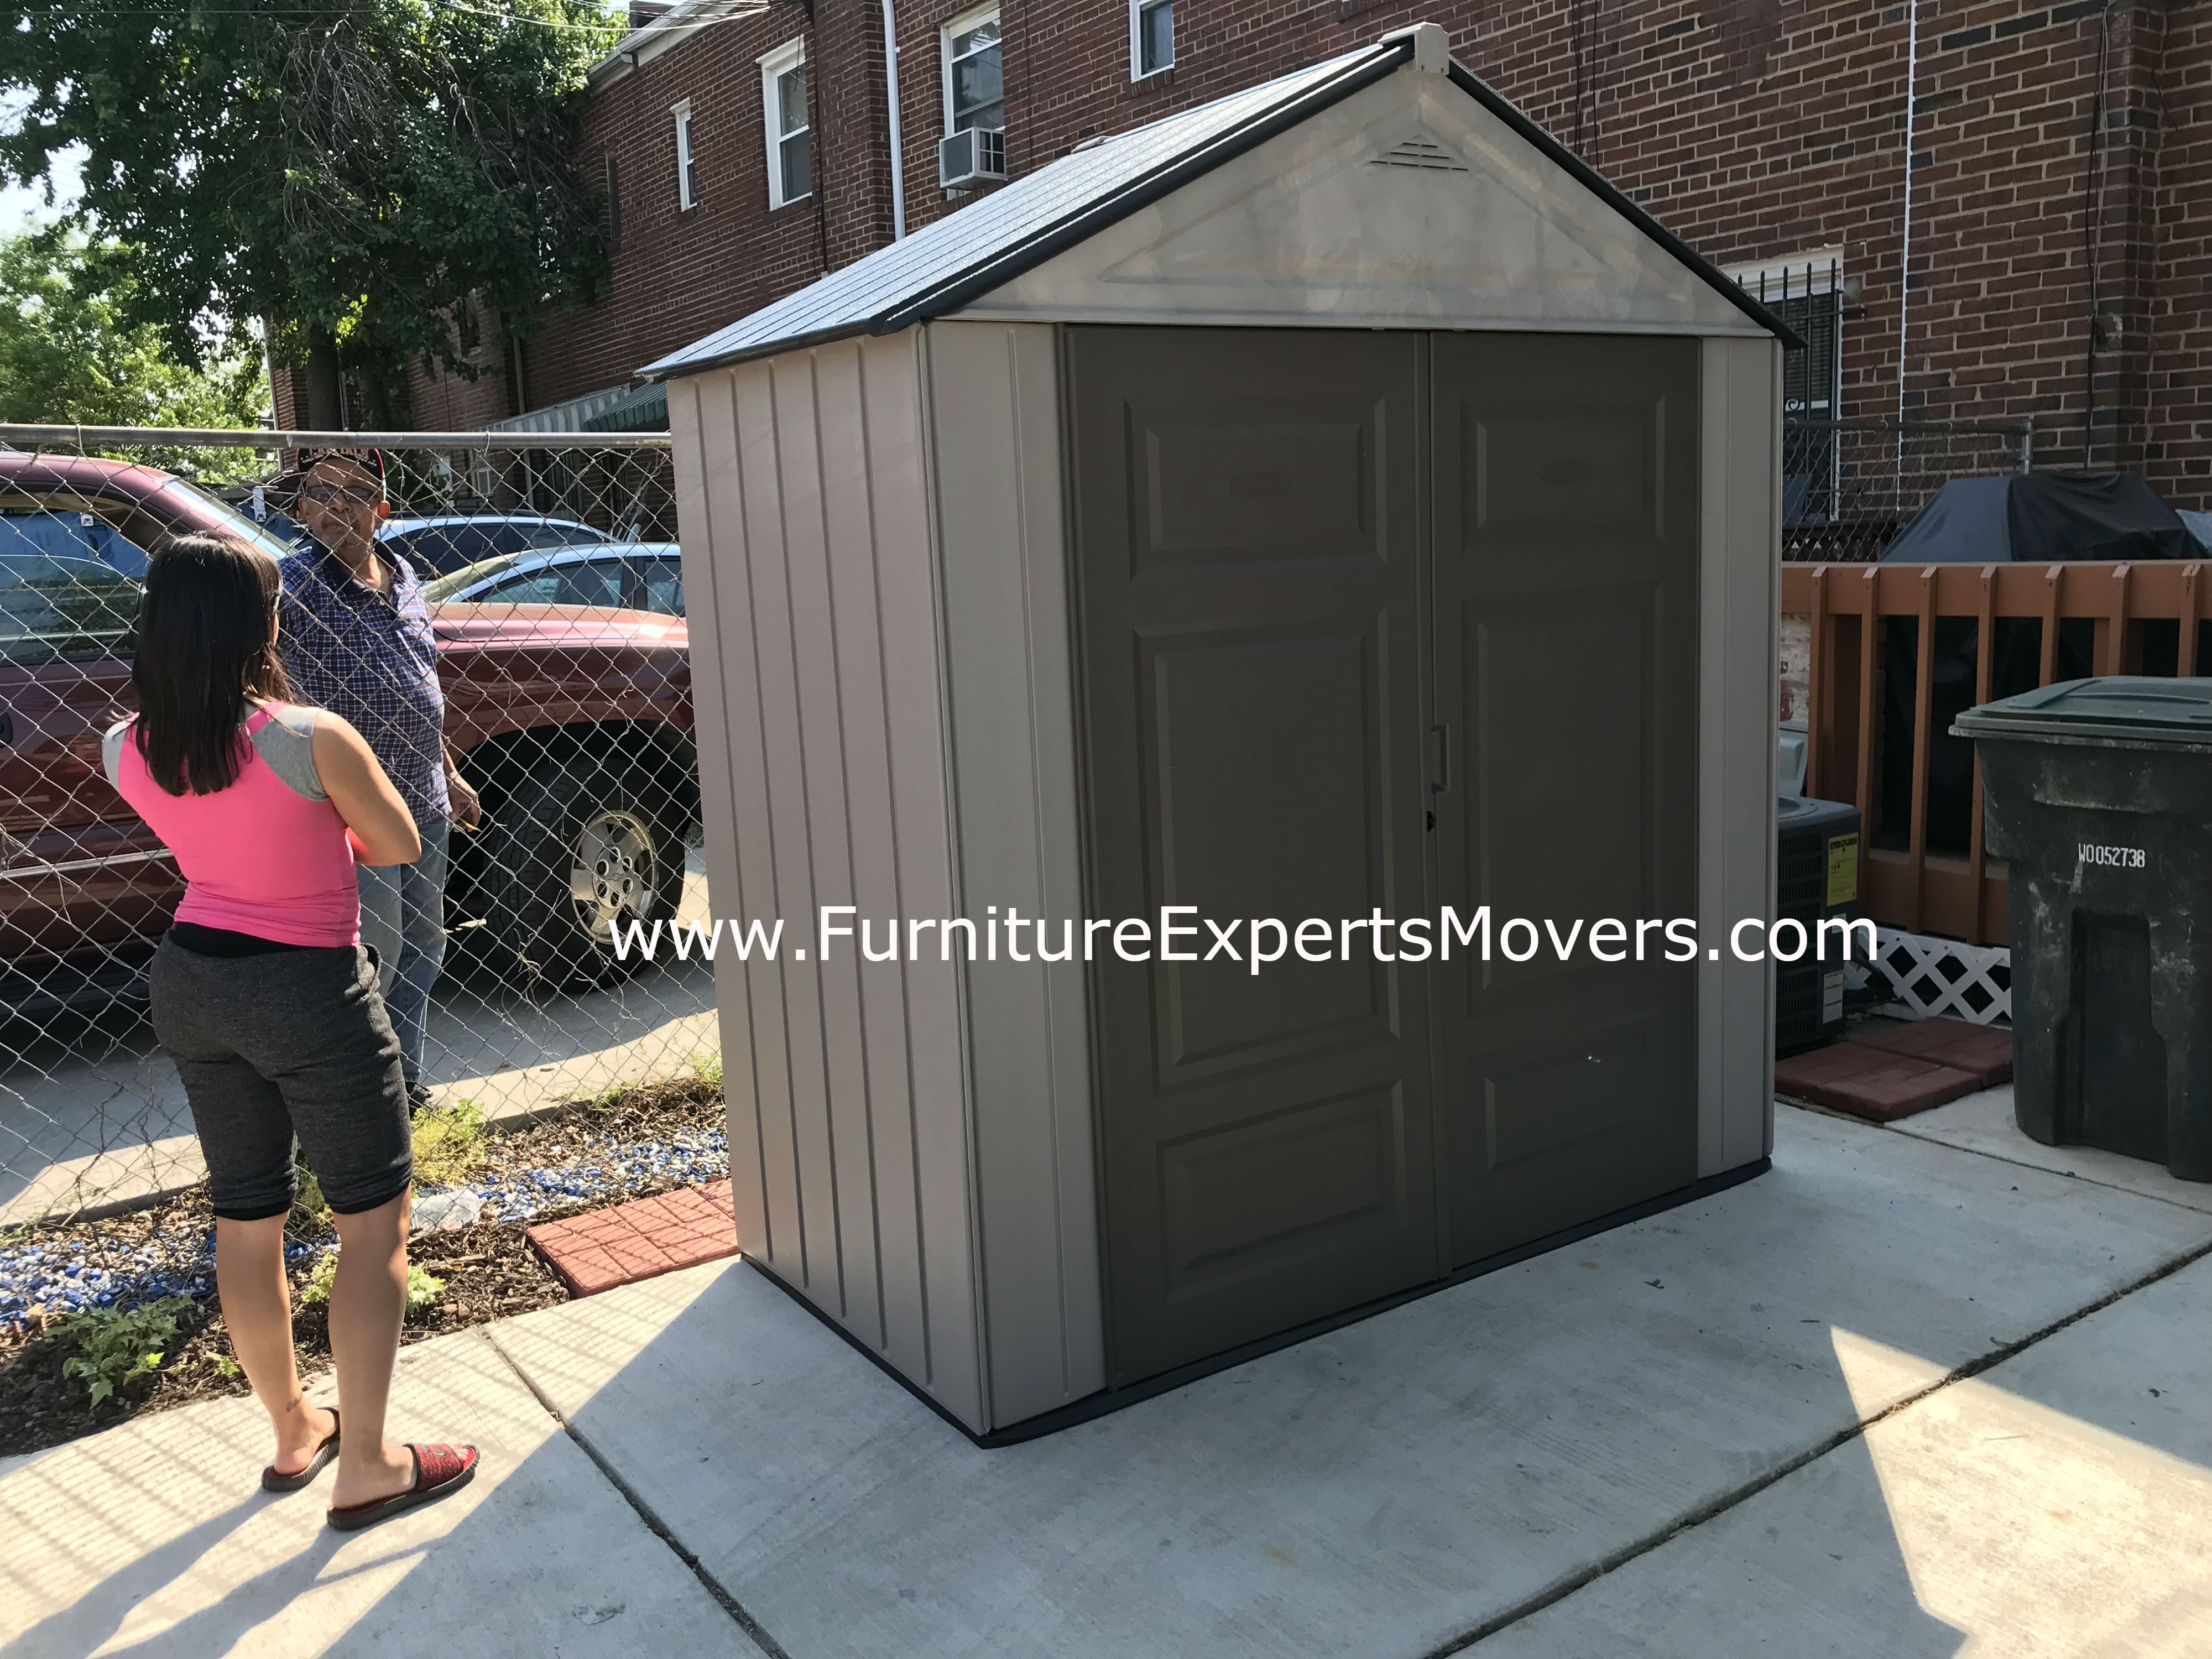 Home depot storage shed Moving and installation